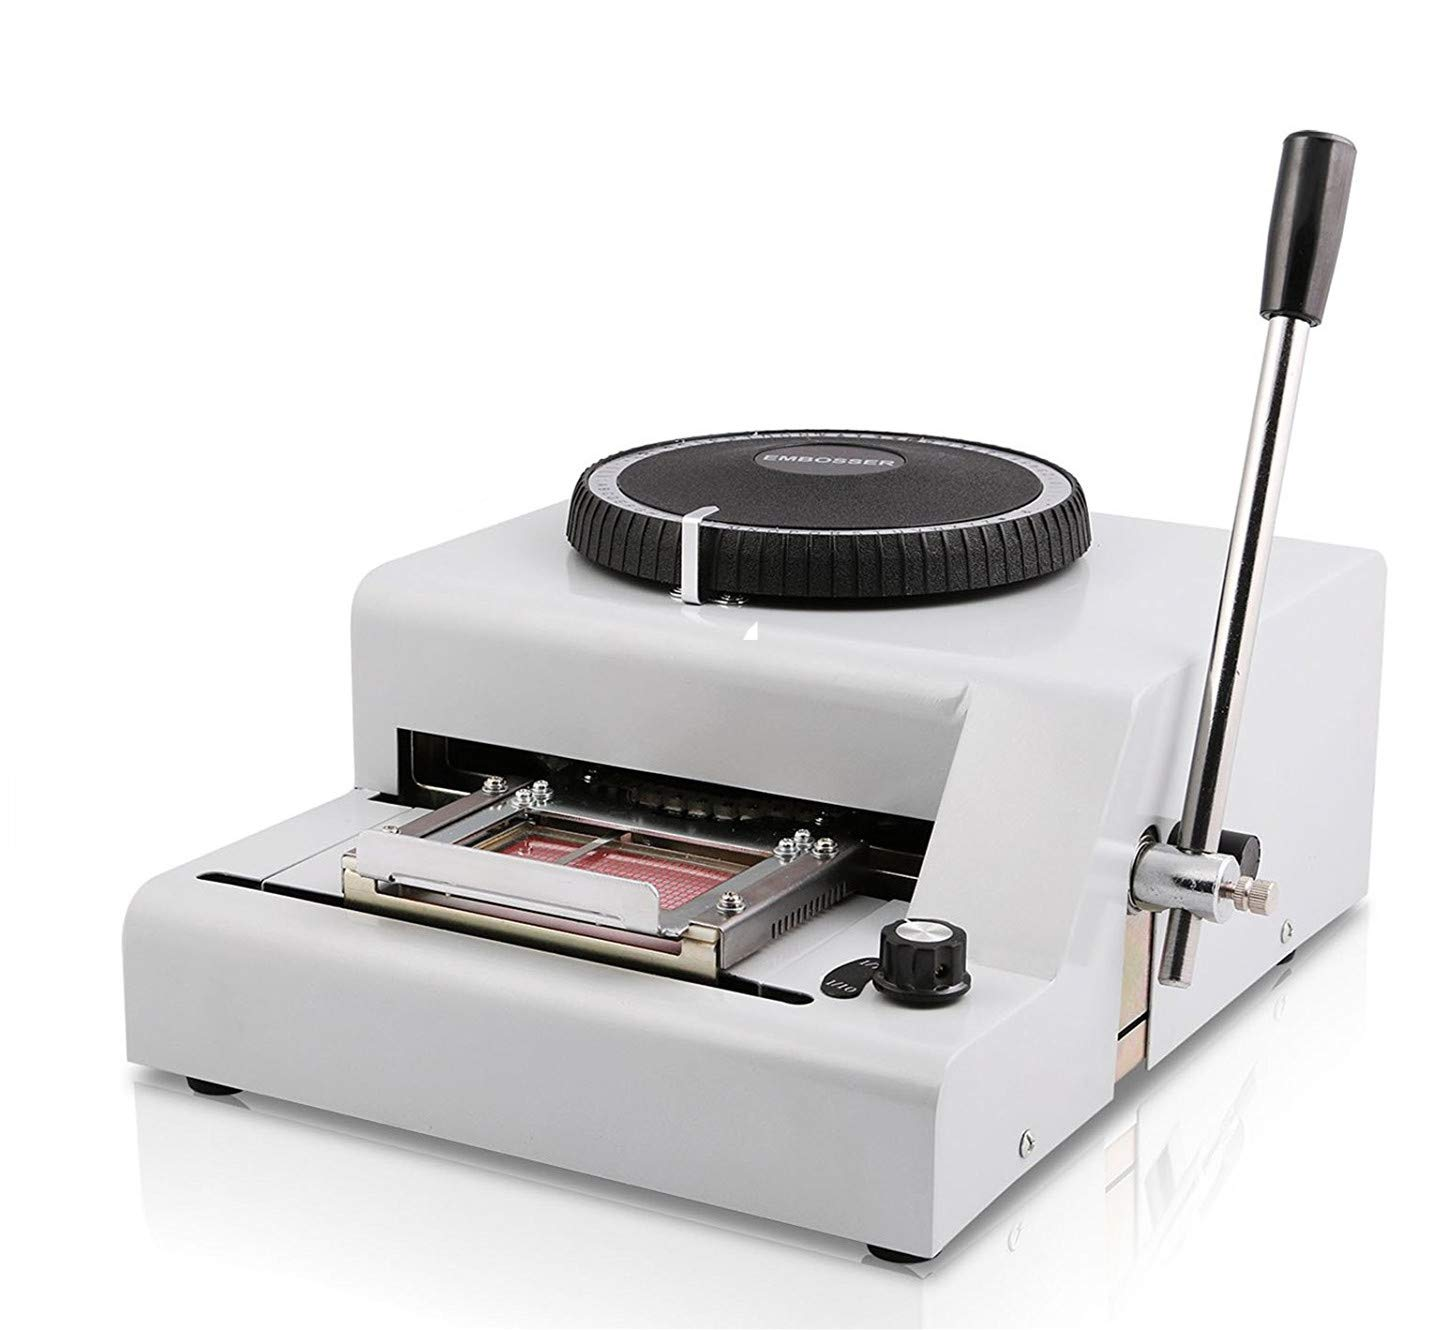 SHZOND Embossing Machine 72 Characters Card Embosser Printer Gift Card Credit ID PVC Card Embosser Stamping Machine Manual Embosser Machine by SHZOND